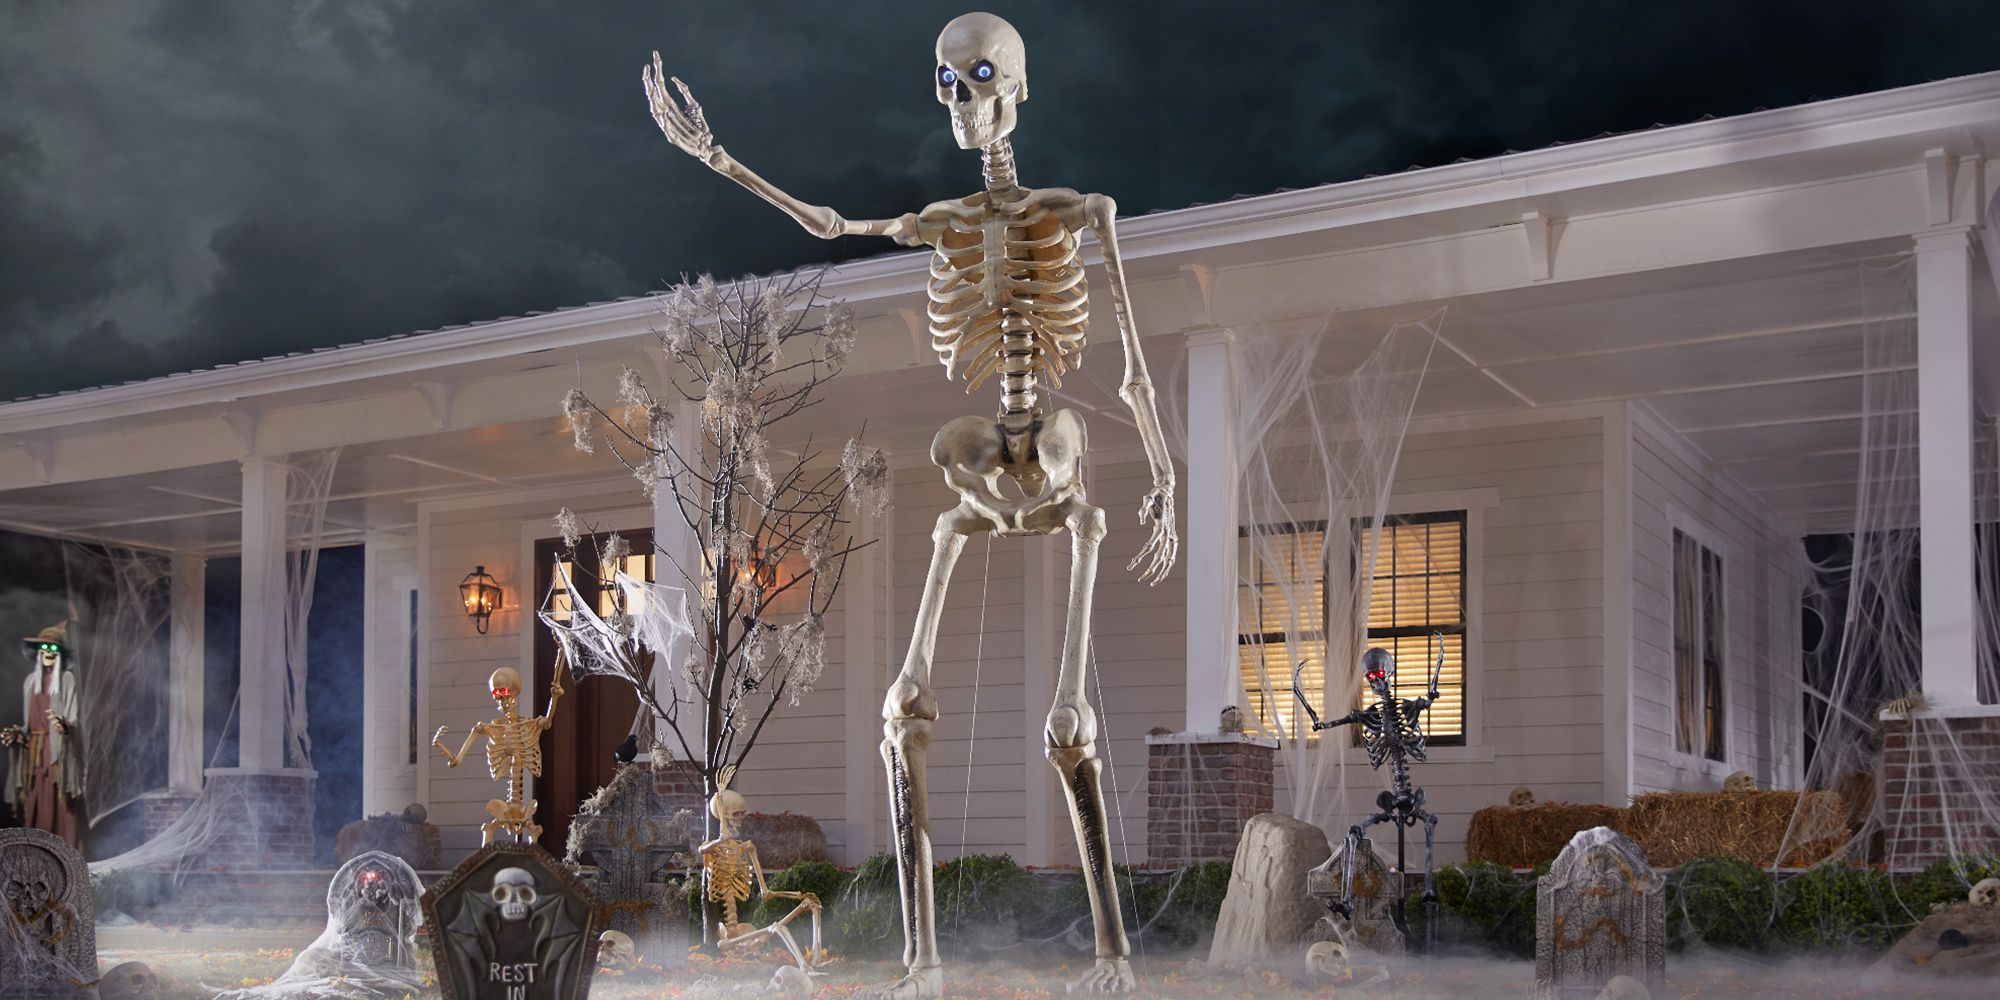 Home Depot Is Selling A 12 Foot Skeleton That Will Be The Talk Of The Town